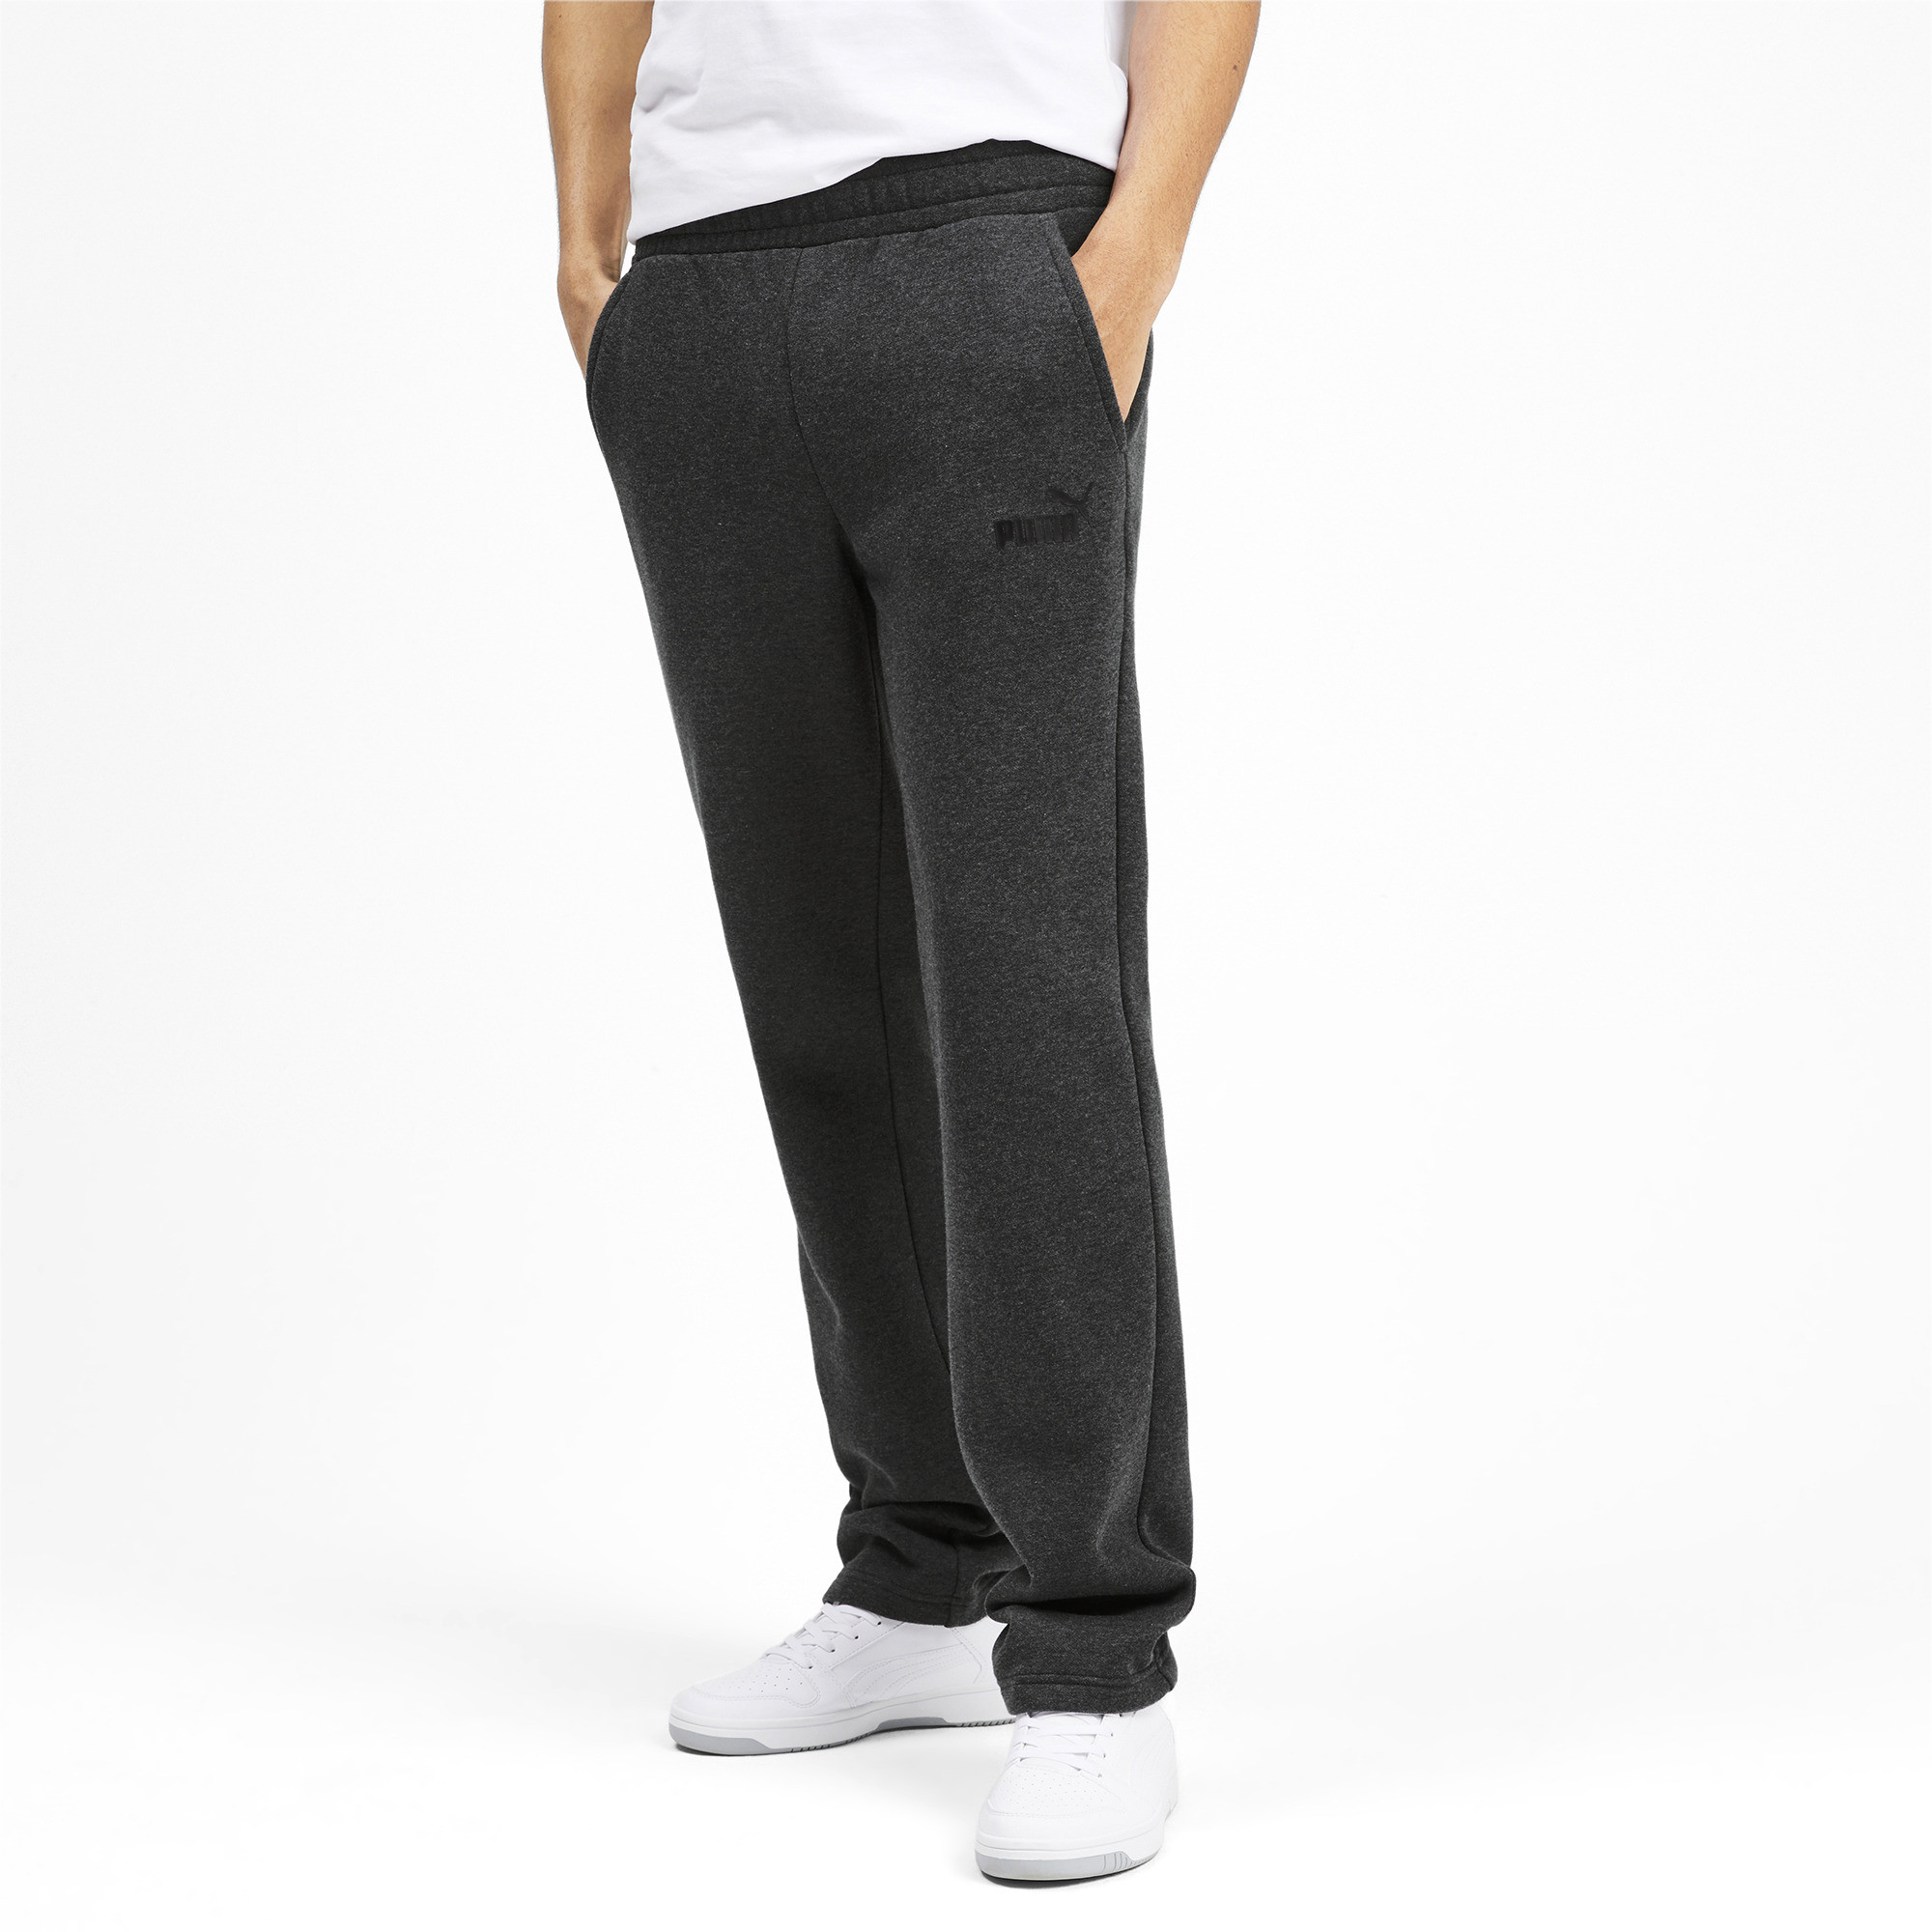 PUMA-Essentials-Men-039-s-Fleece-Pants-Men-Knitted-Pants-Basics thumbnail 19